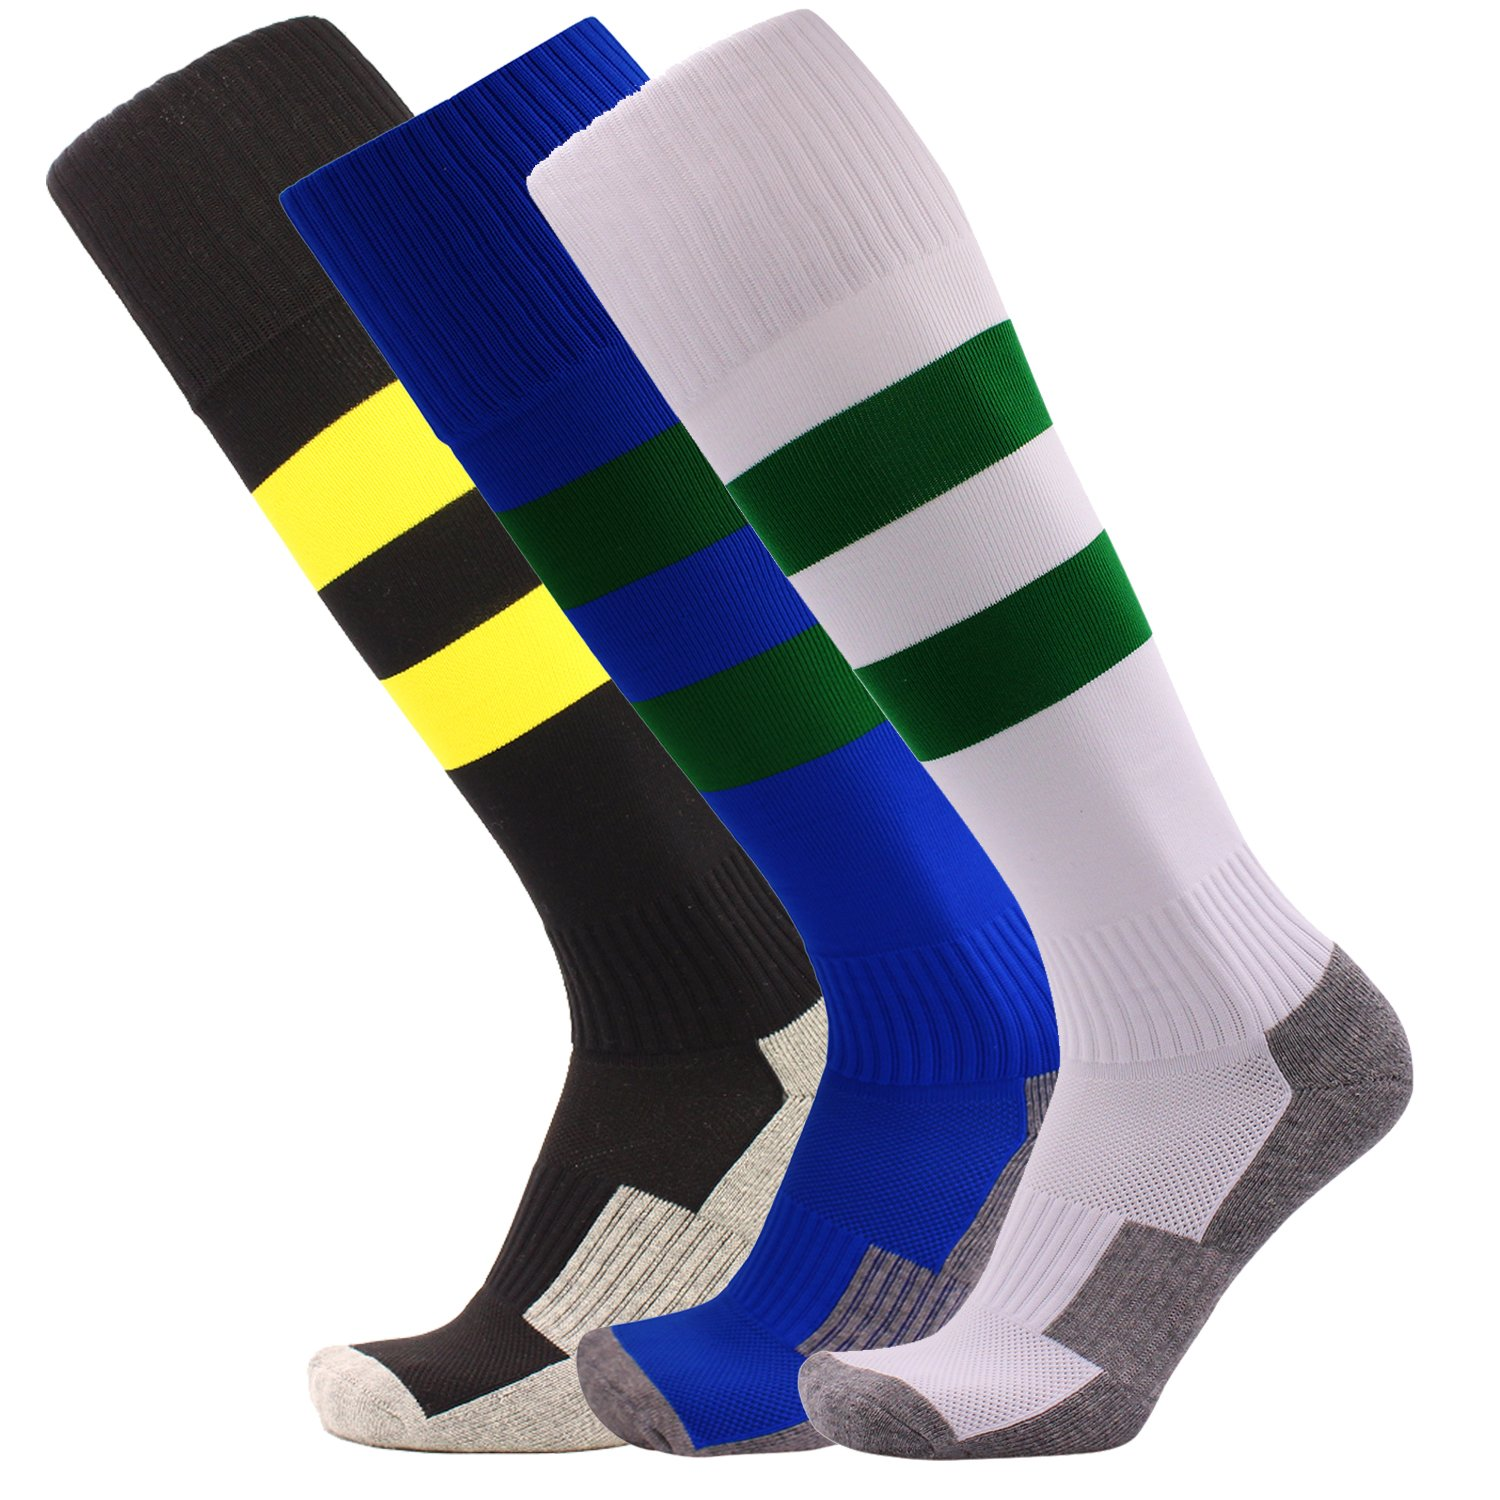 983d0a04db7 □ FEATURES 4-14 Kids Toddlers Soccer Socks Knee High Comfortable Cushioned  Towel Bottom. New   fashion   fresh color stripe soccer socks